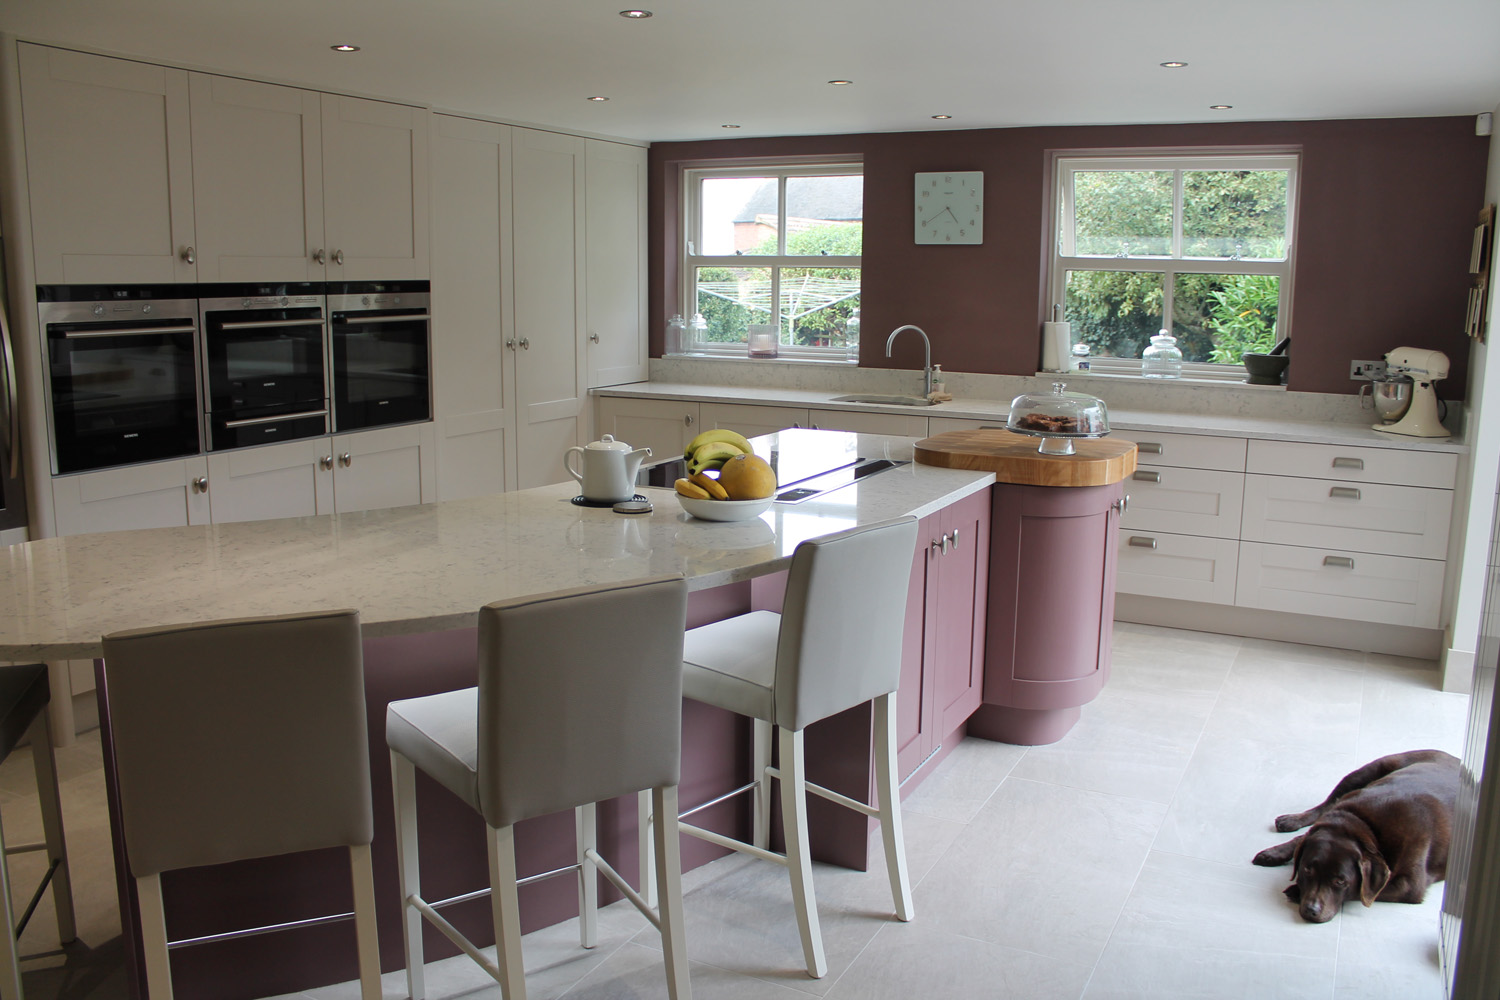 Bespoke Hand-Painted Shaker Style Kitchen